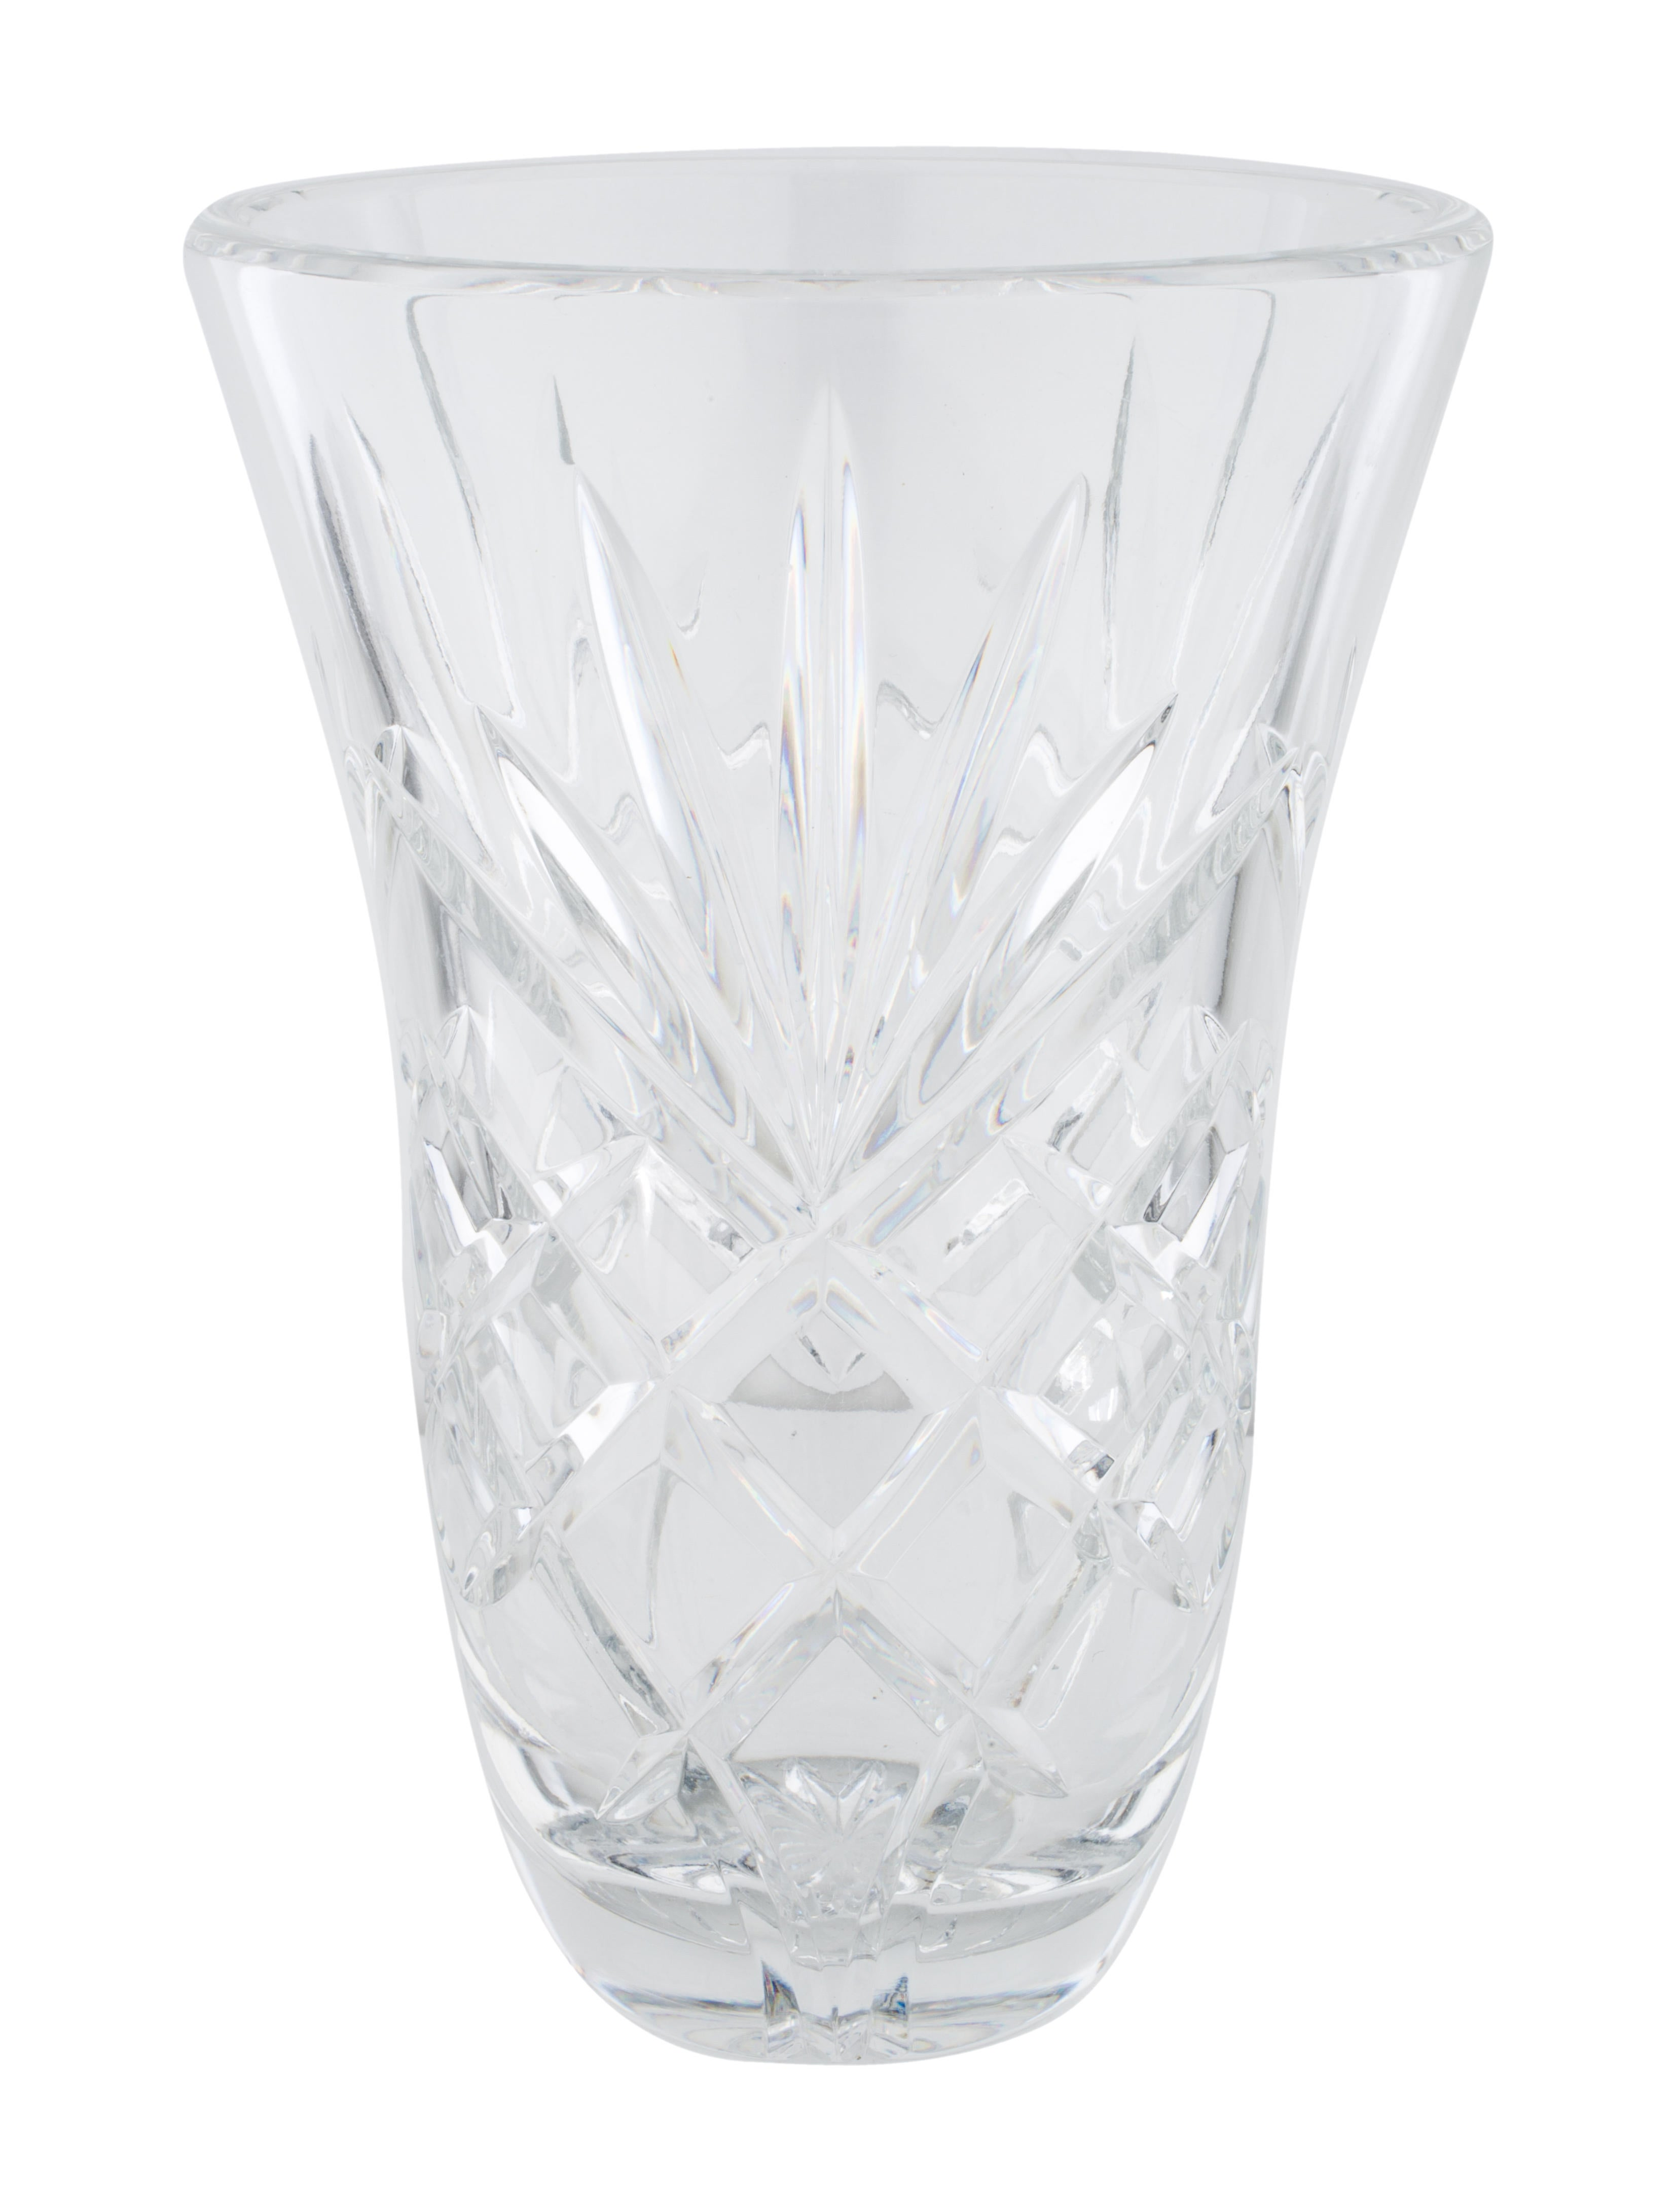 Waterford crystal pineapple vase decor and accessories pineapple vase reviewsmspy